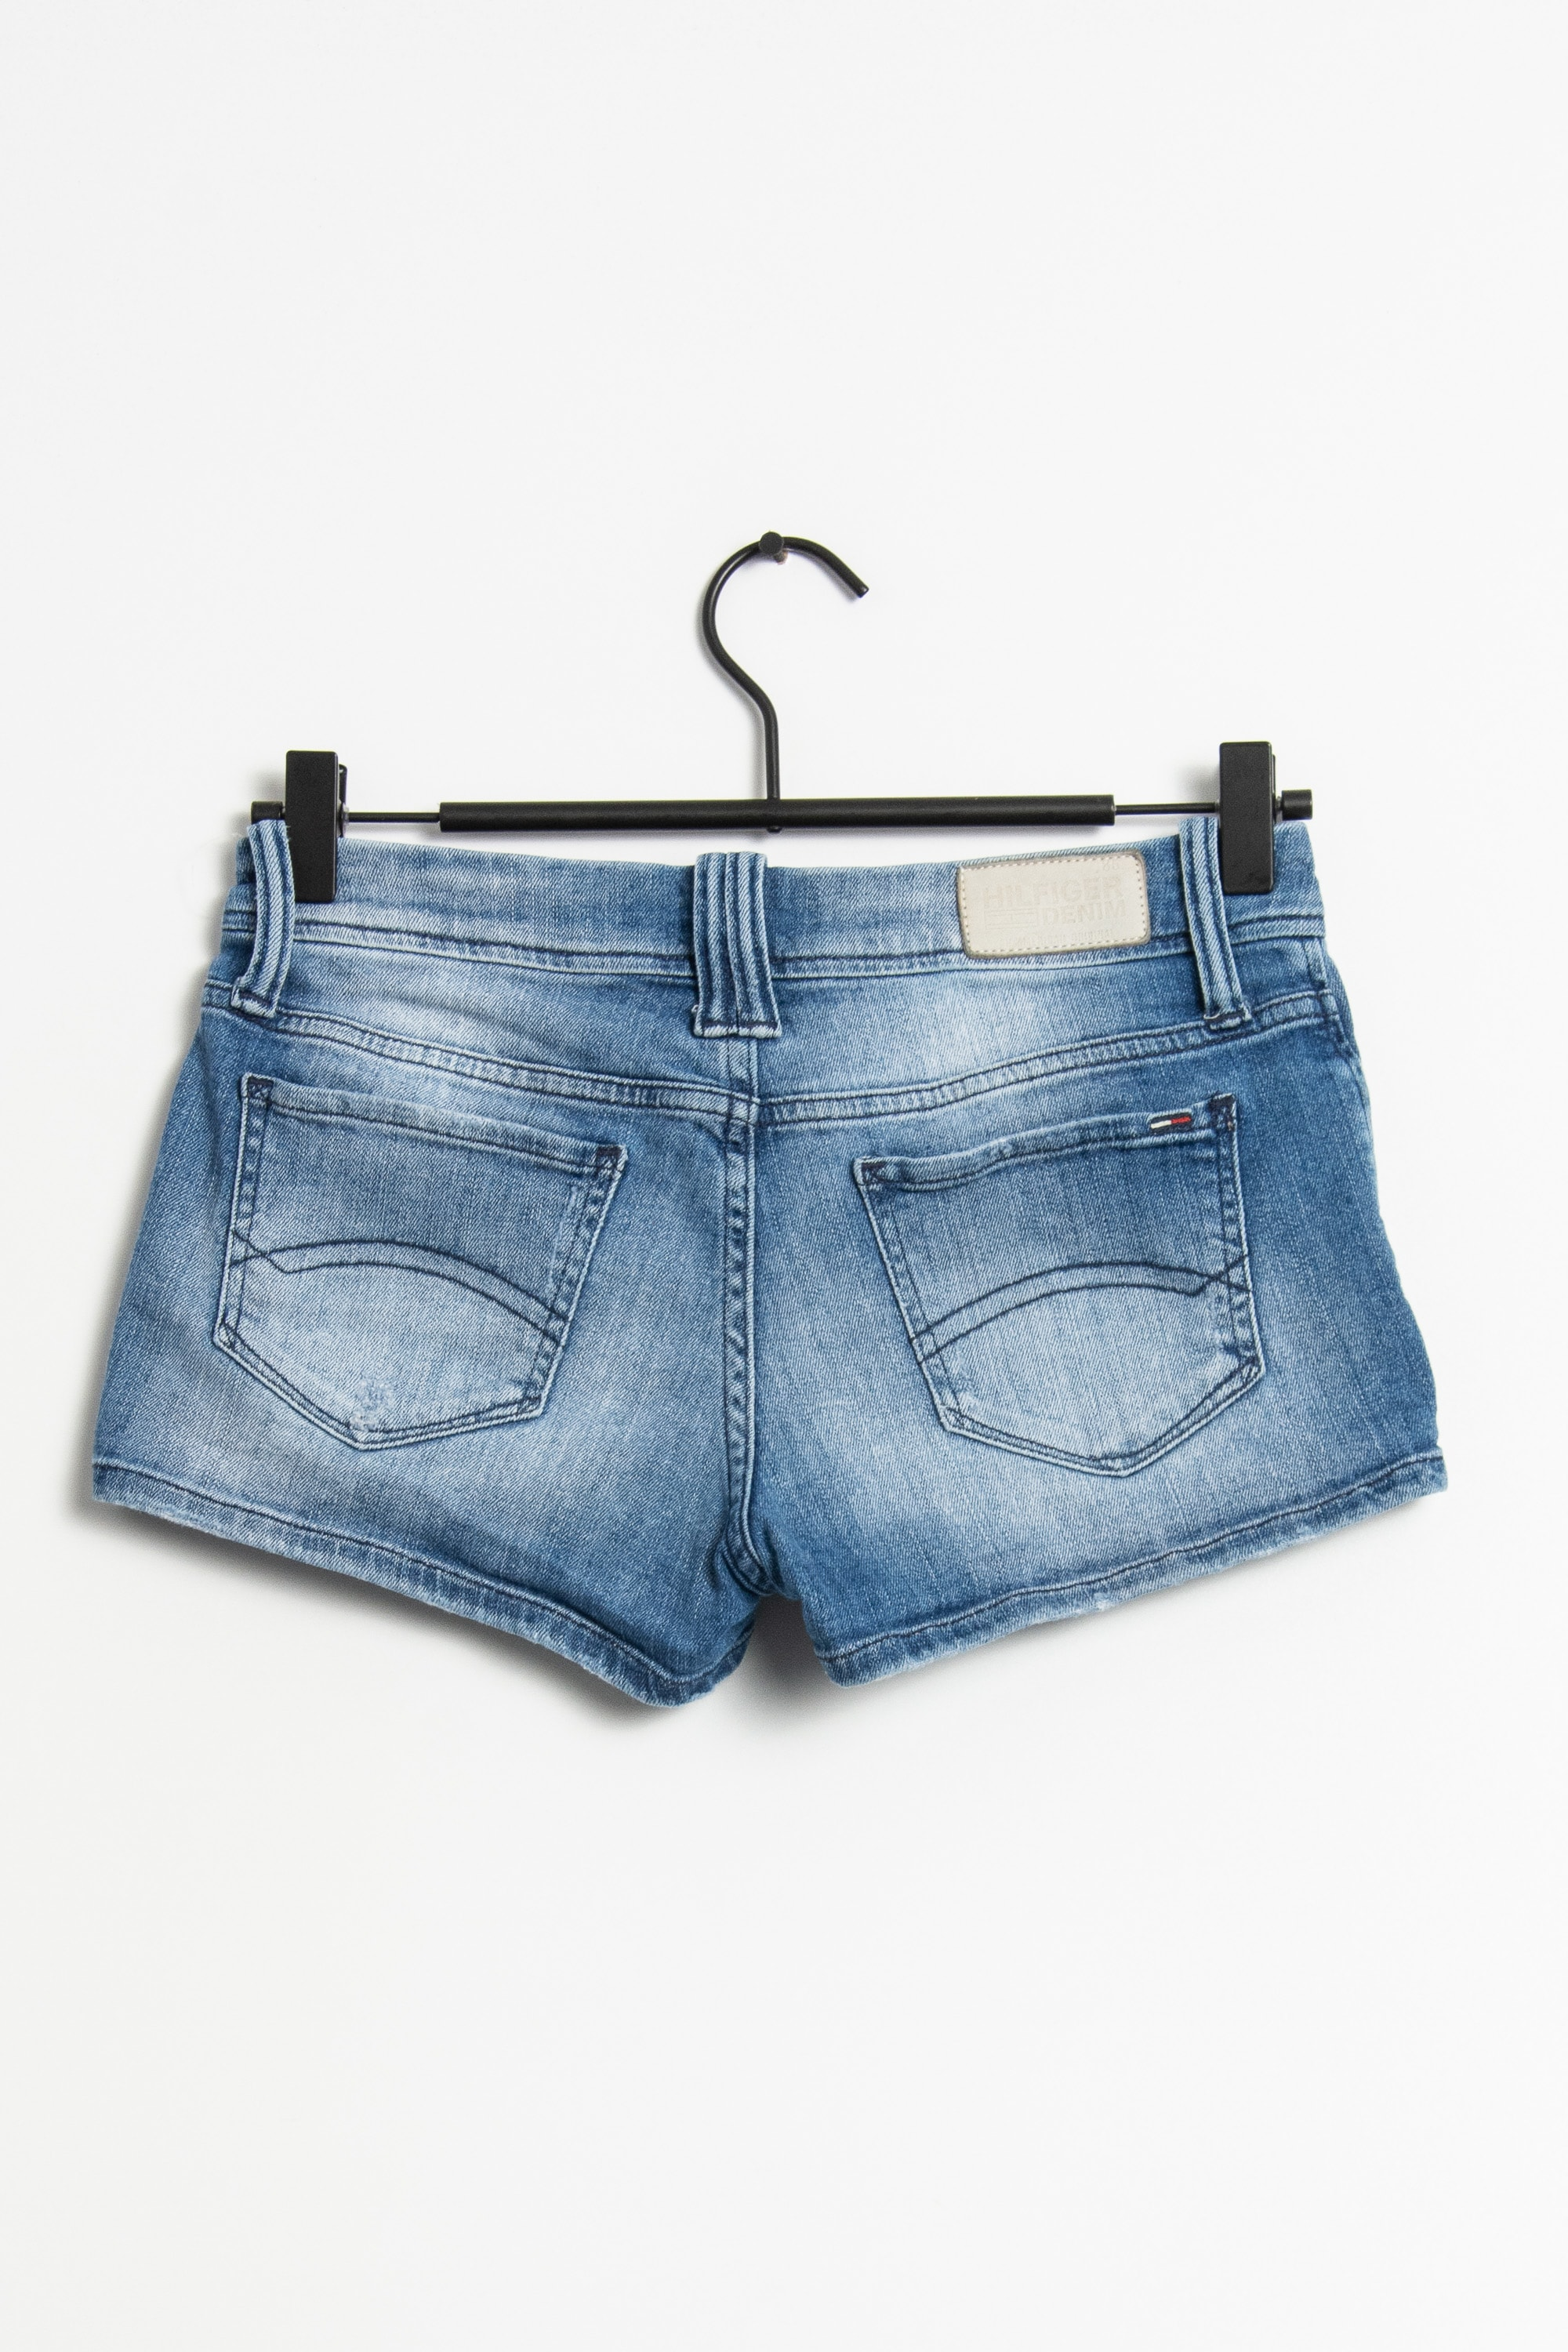 Hilfiger Denim Shorts Blau Gr.XS